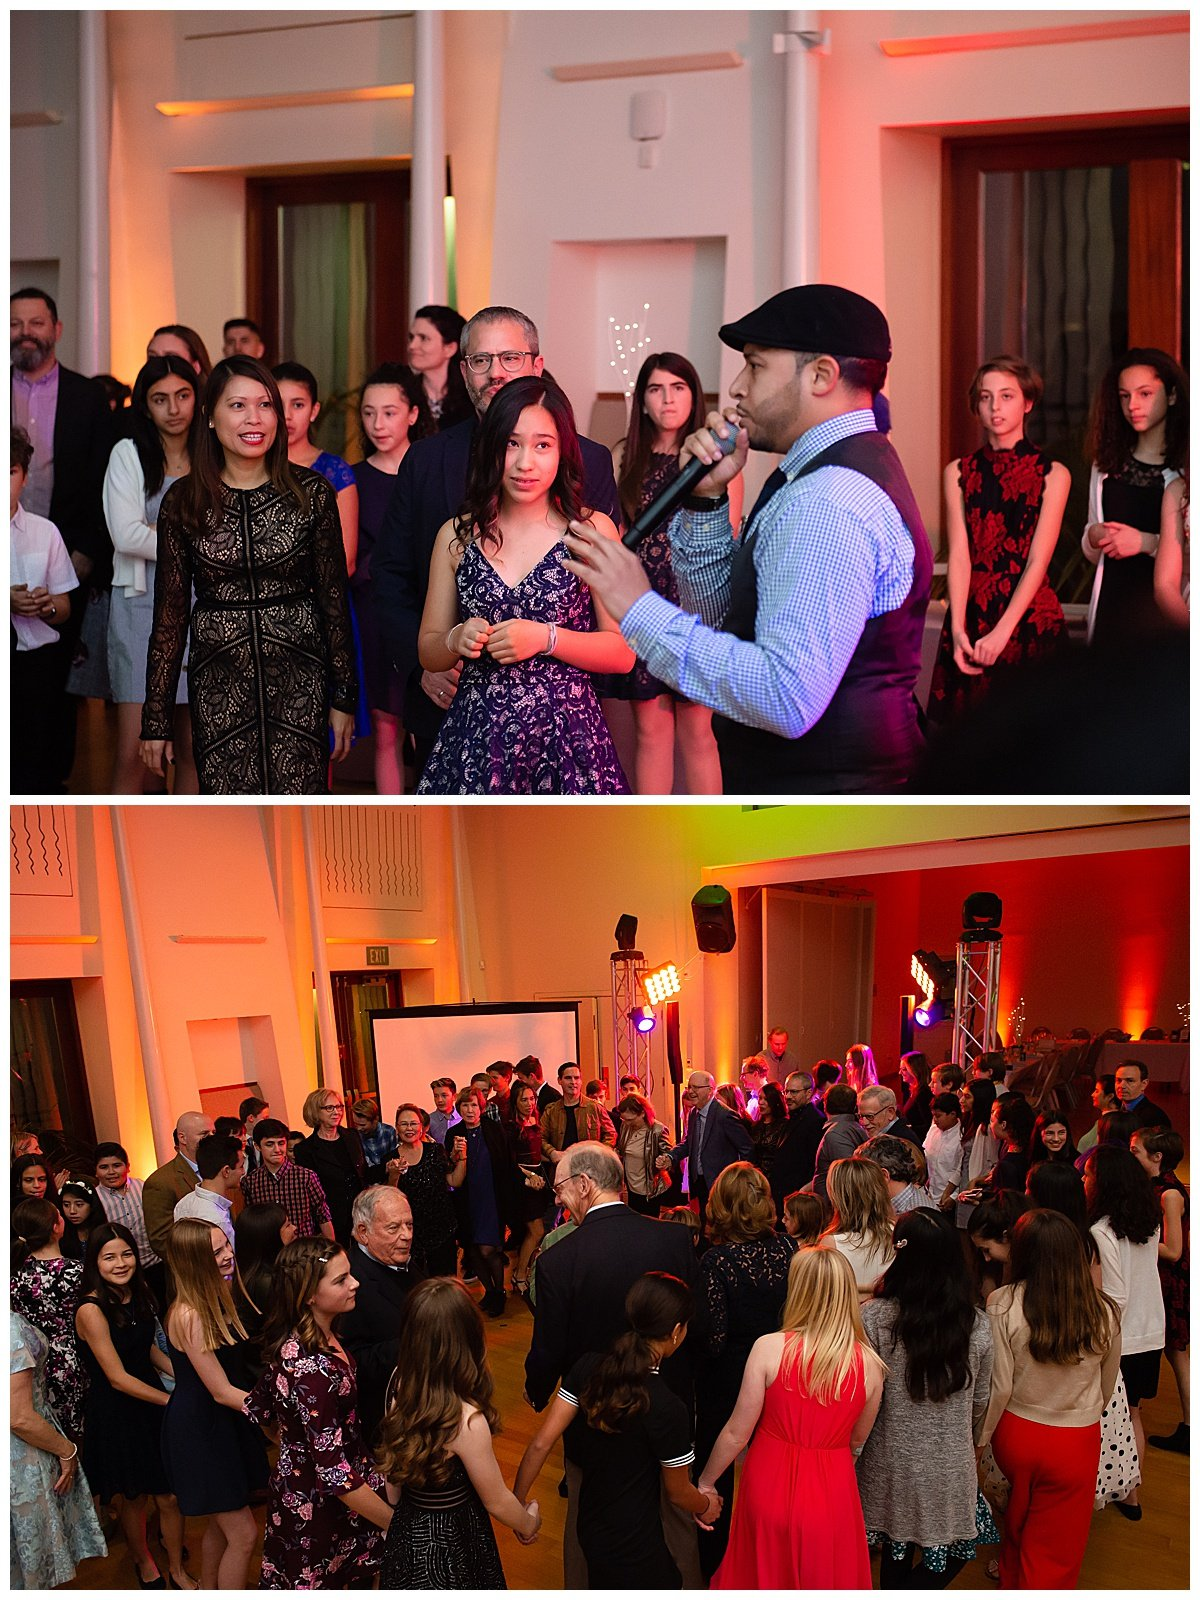 Guests dancing at Bay Area Bar and Bat Mitzvah photography by chloe jackman photography